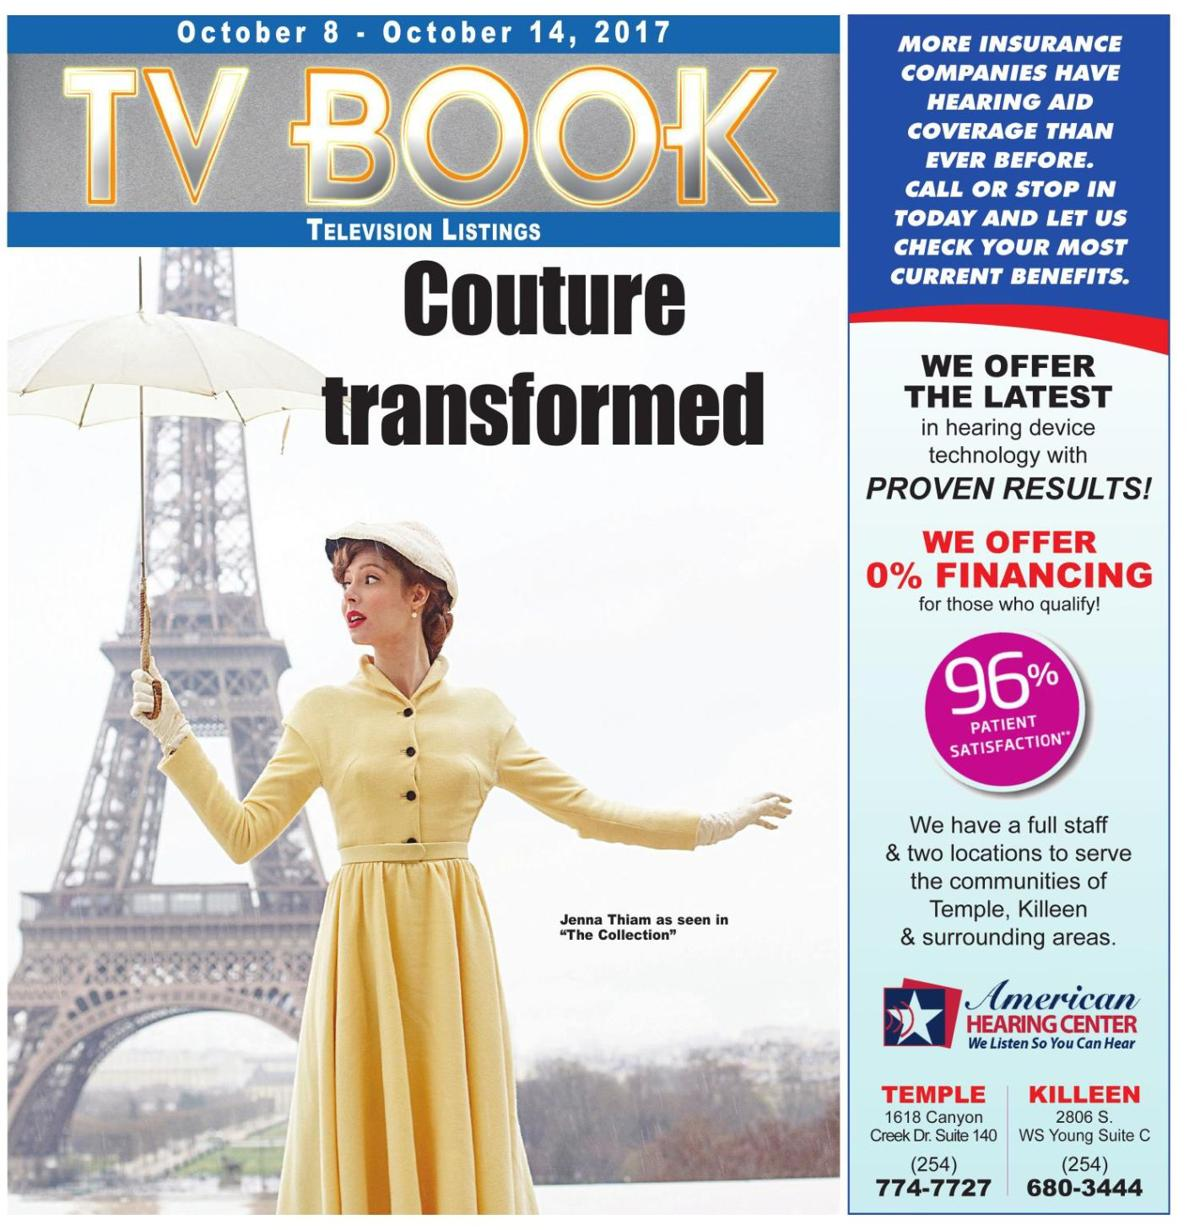 TV Book October 8th - 14th